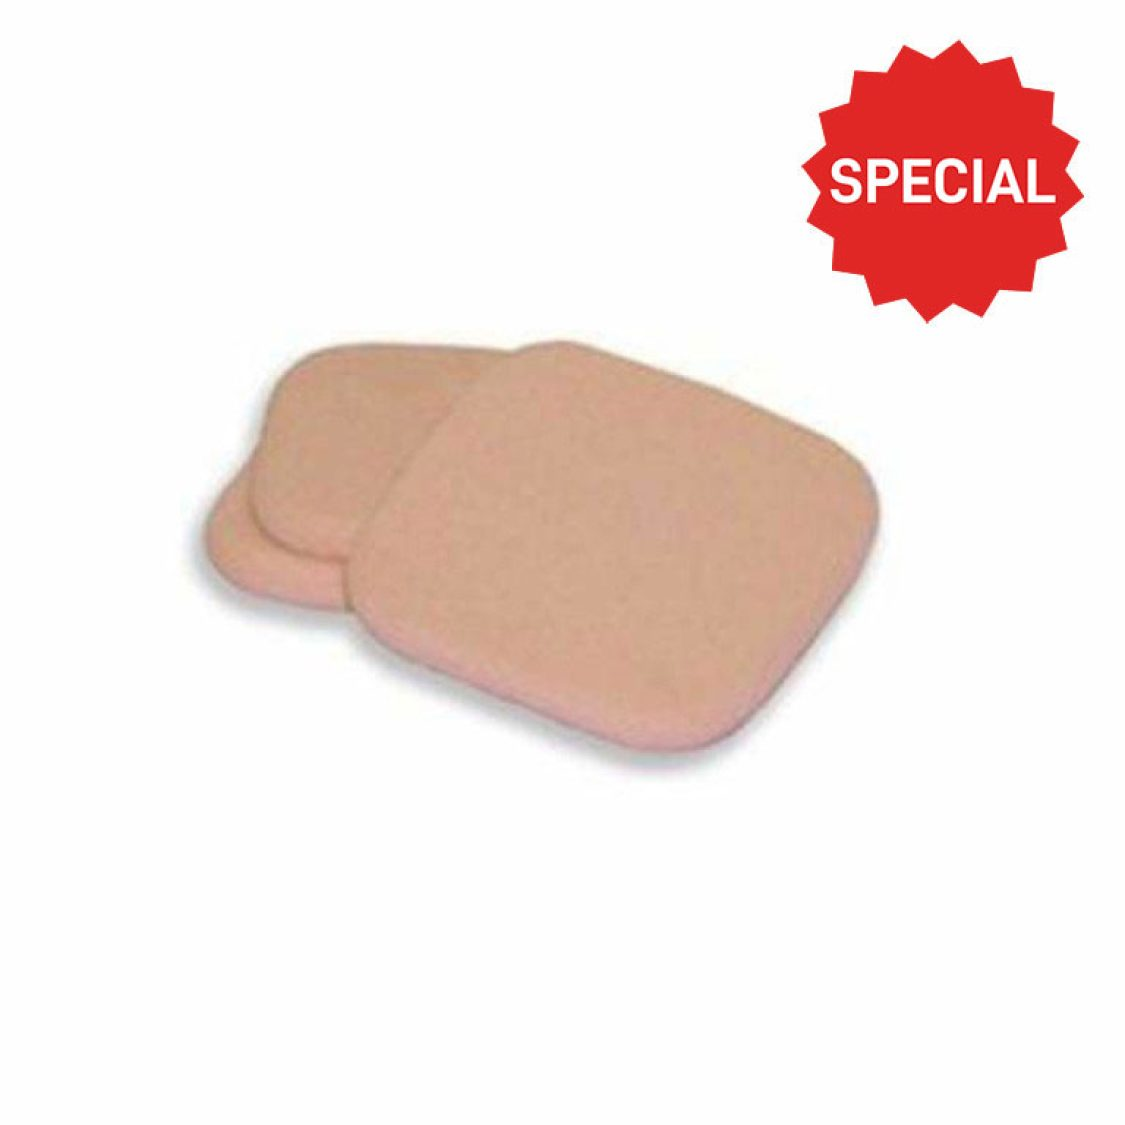 Hannon - Foundation Sponges (3 in pack) for Powder Foundations